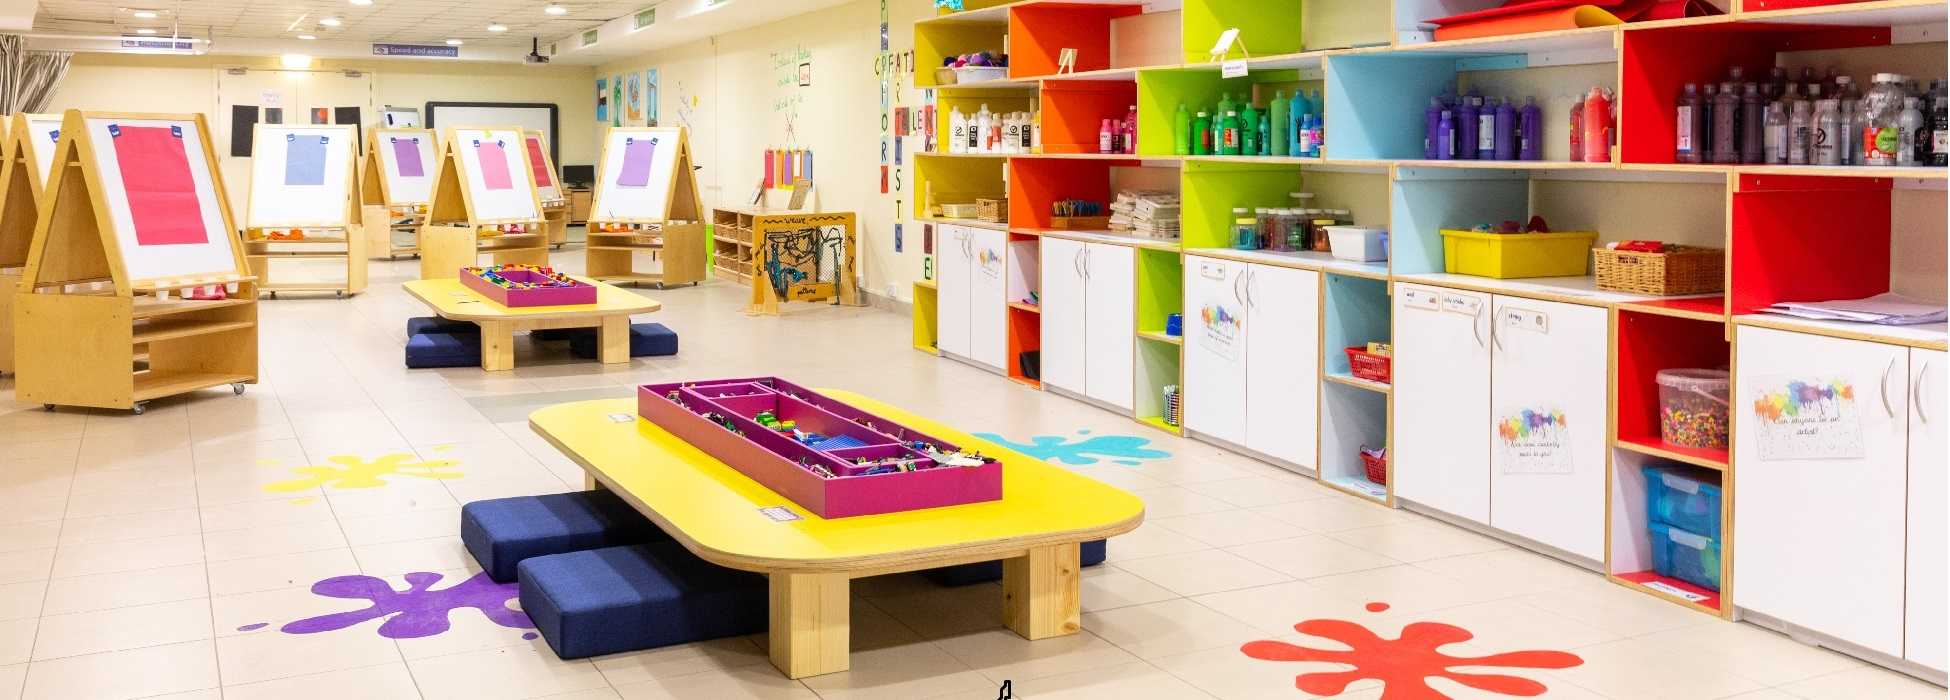 Moon Kids are the best makers of furniture and playgrounds in the UAE